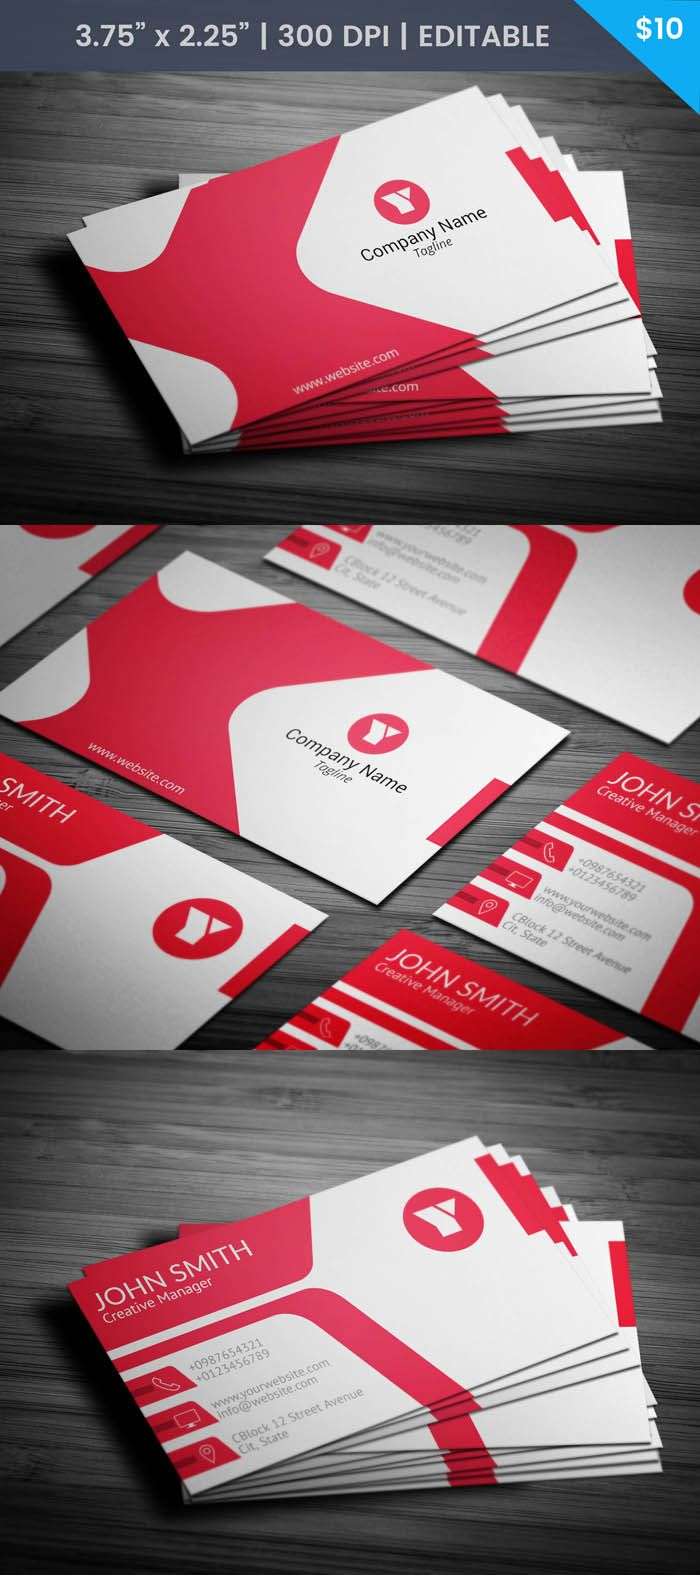 Free sleek 3d artist business card template modern business cards free sleek 3d artist business card template friedricerecipe Image collections